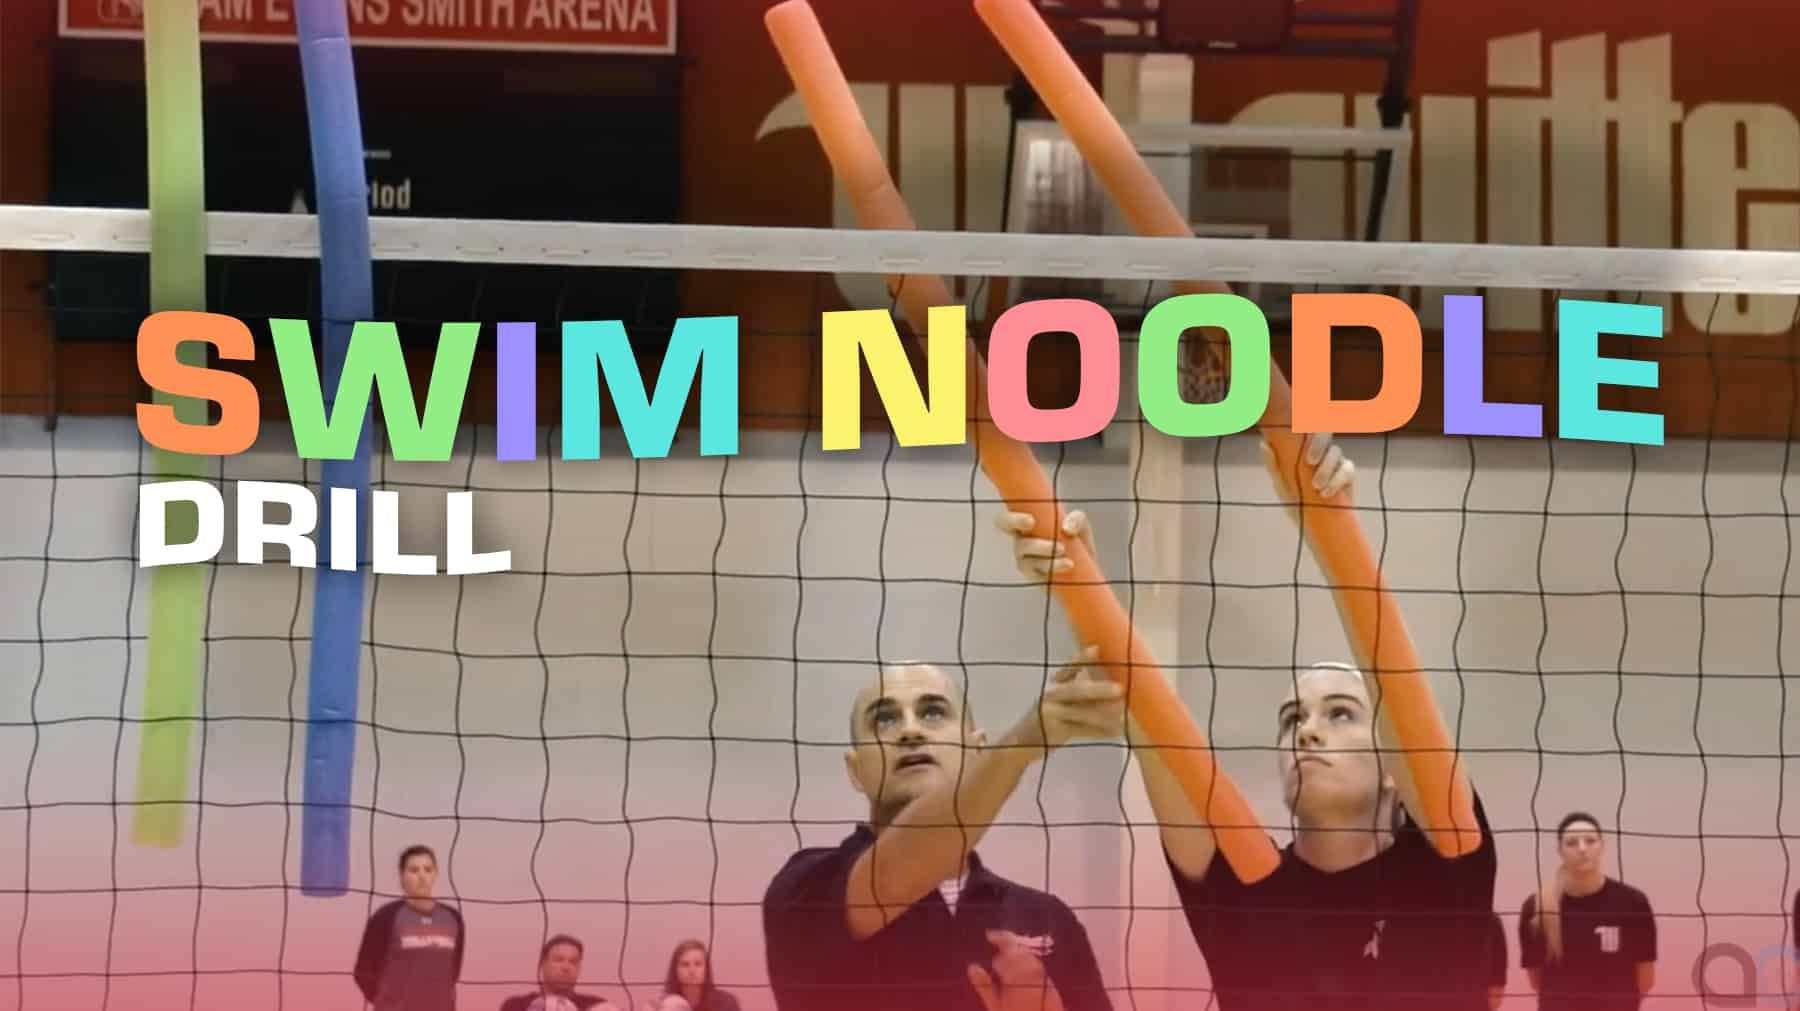 Swim Noodle Drill For Crafty Shot Making The Art Of Coaching Volleyball Coaching Volleyball Volleyball Training Volleyball Workouts